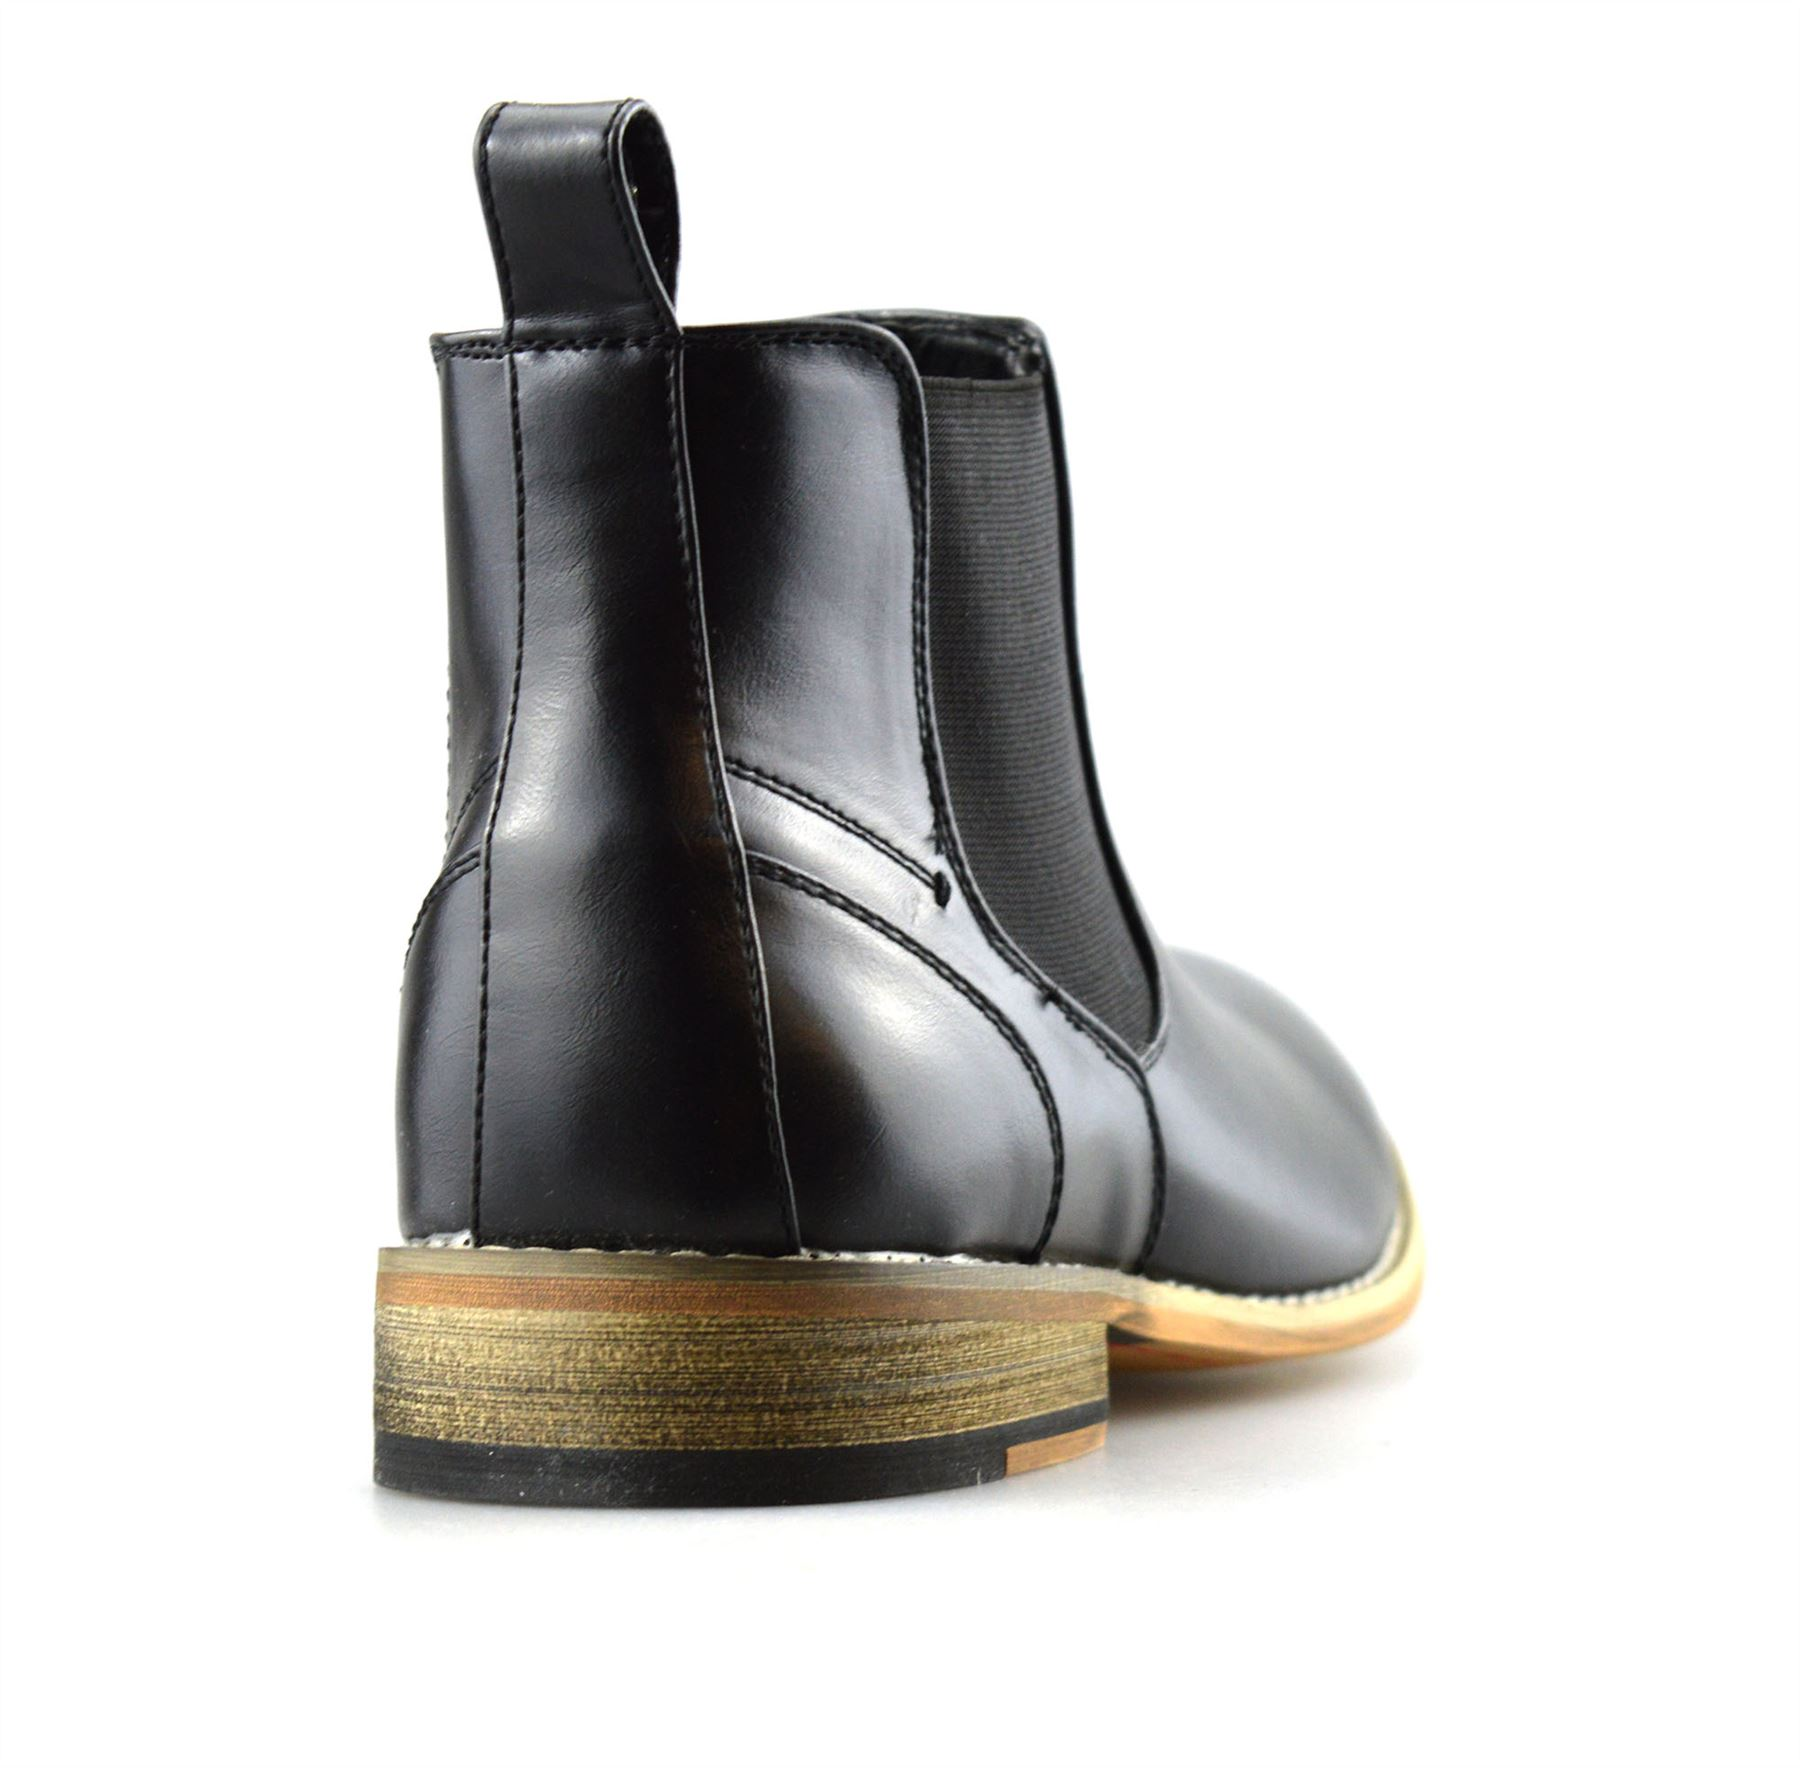 Mens-Memory-Foam-Chelsea-Ankle-Boots-Casual-Smart-Formal-Dealer-Work-Shoes-Size thumbnail 12